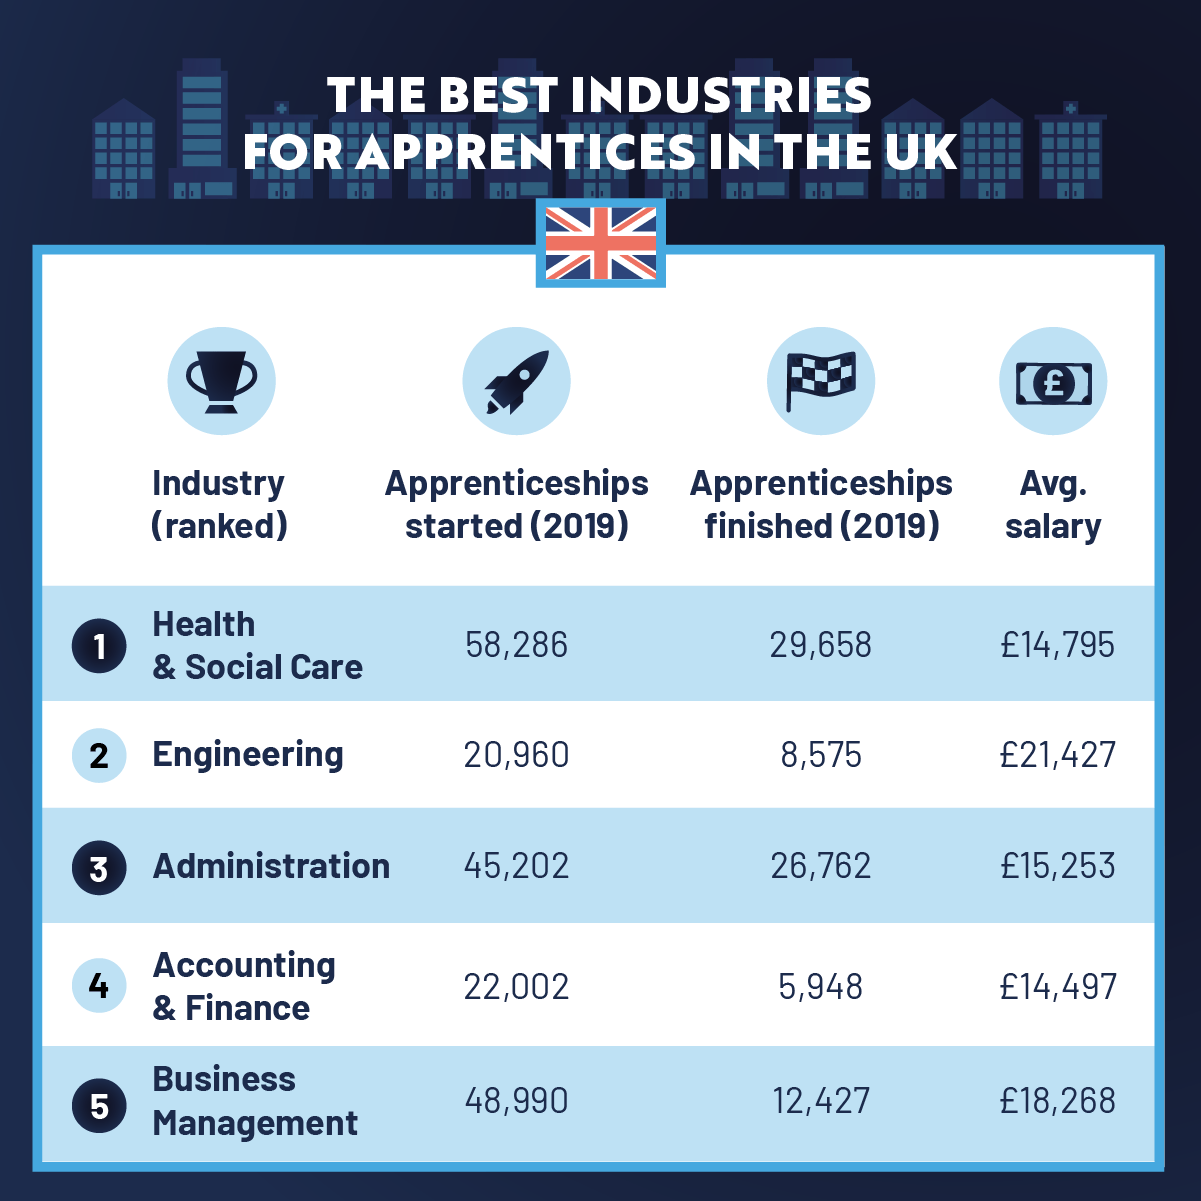 The Best Industries For Apprentices In The UK